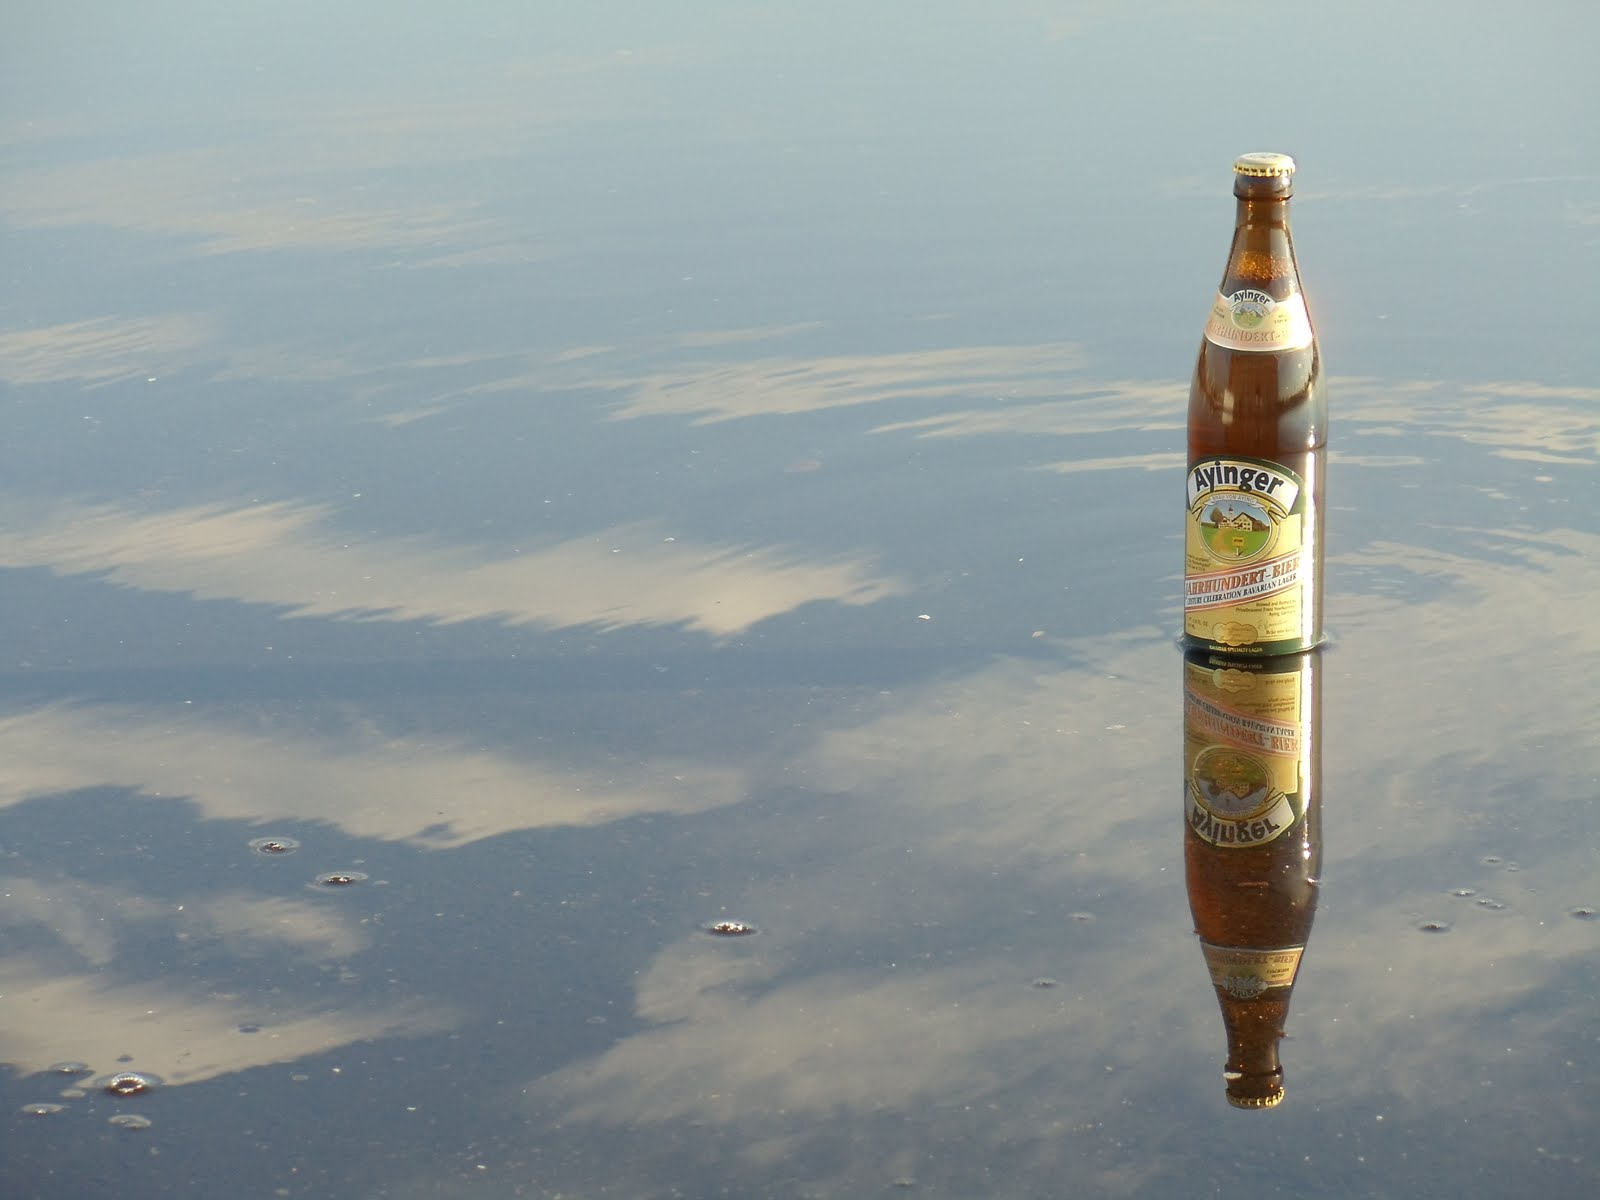 Brews With A View: Ayinger Jahrhundert-Bier Bavarian Lager ...